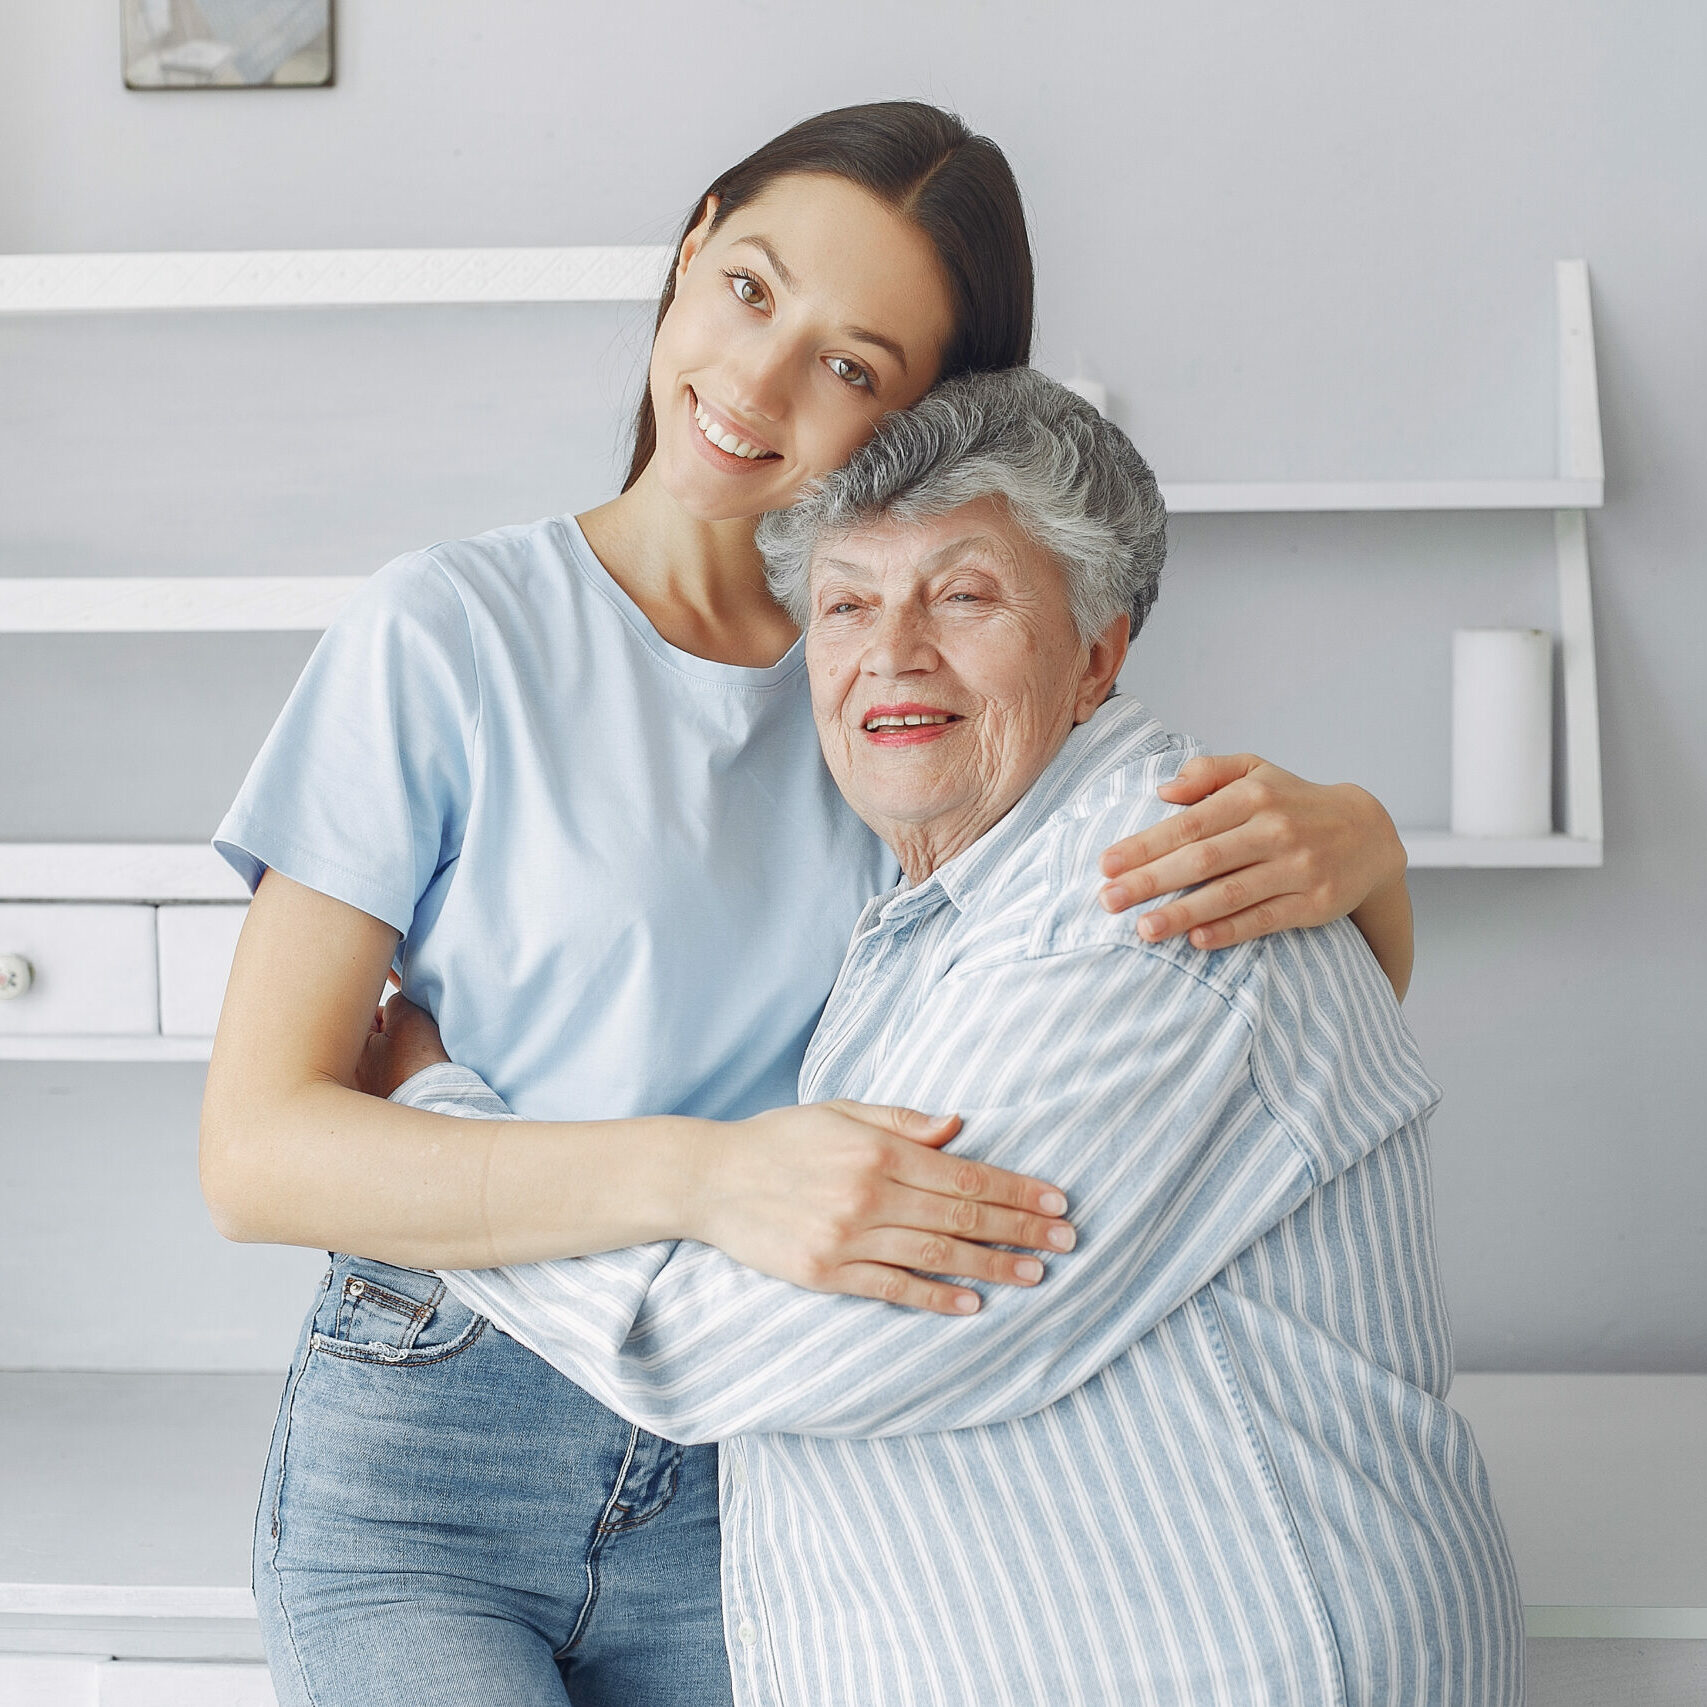 Old woman in a kitchen. Grandparents at home. Woman in a whire shirt